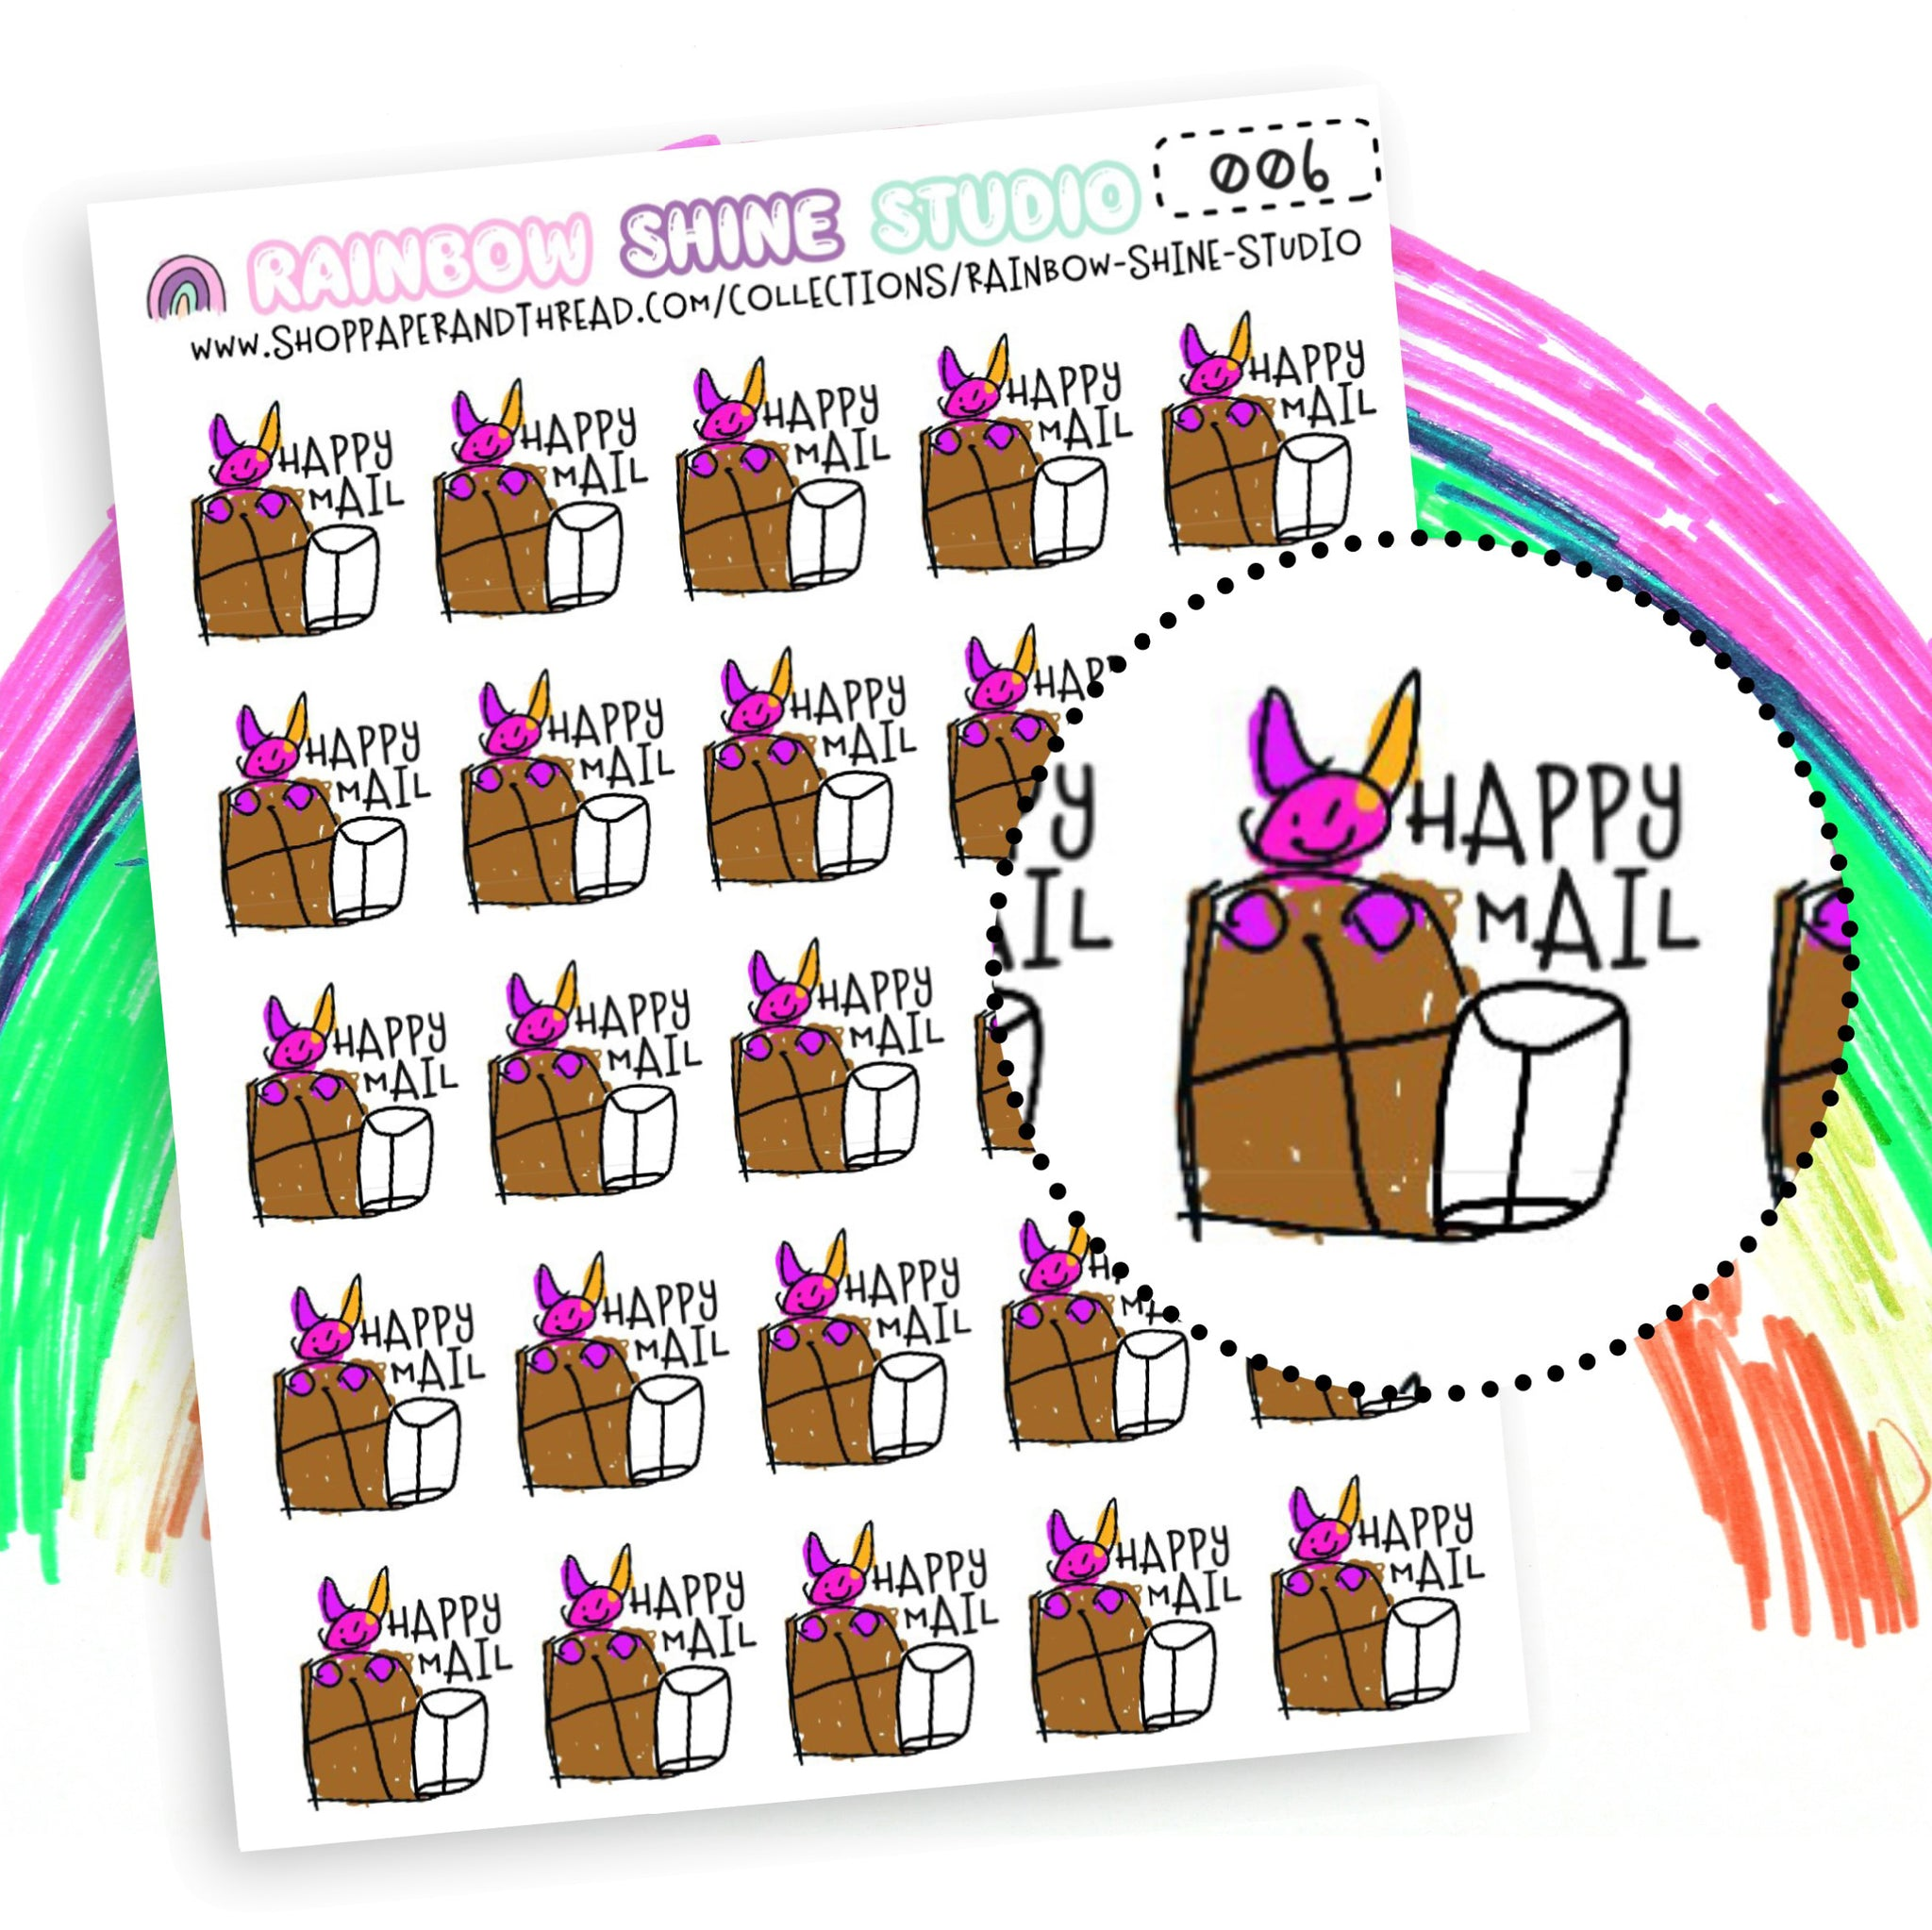 Happy Mail Planner Stickers - Bat Planner Stickers - Doodle Planner Stickers - Rainbow Shine Studio - 006